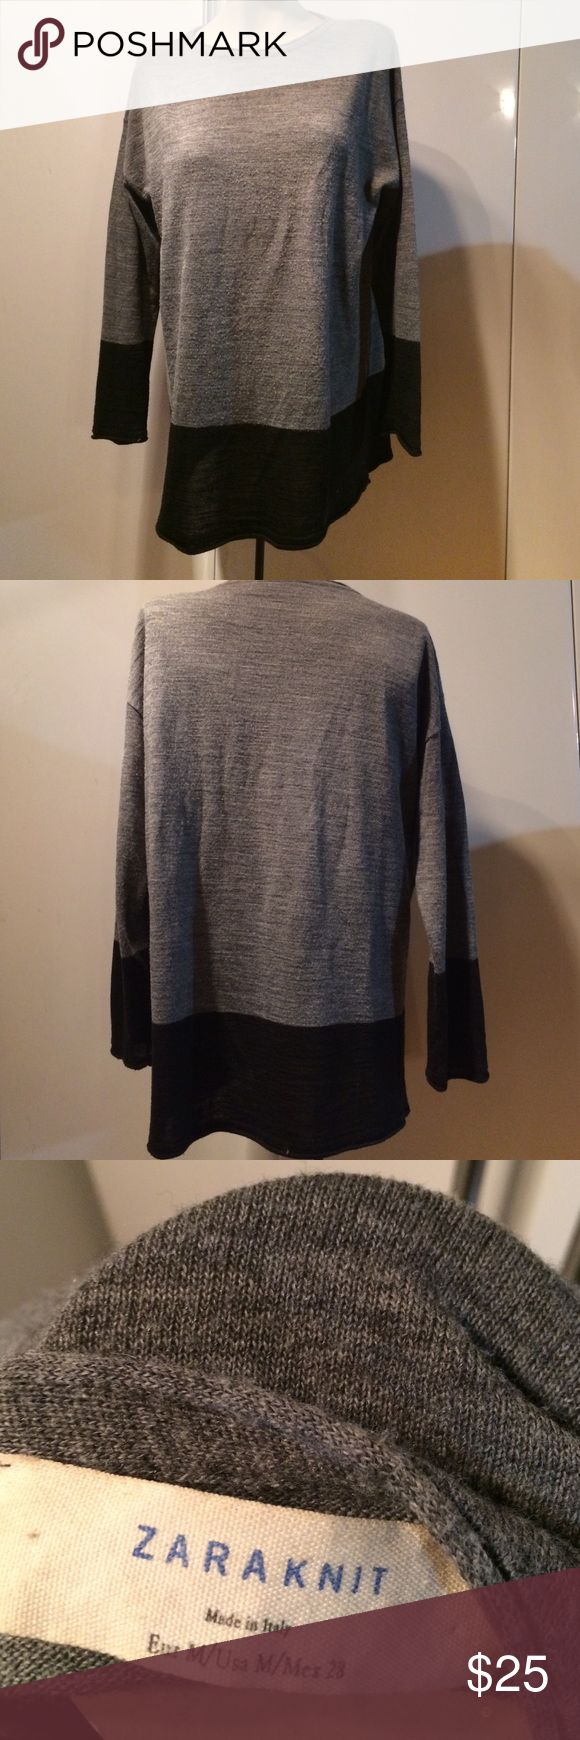 Zara (Italian) light sweater CYBER MONDAY SALE  ❤️️Bought in Europe. Gently worn. Please see last photo for some peeling in the front, which shows signs of been truly loved. Zara Sweaters Crew & Scoop Necks